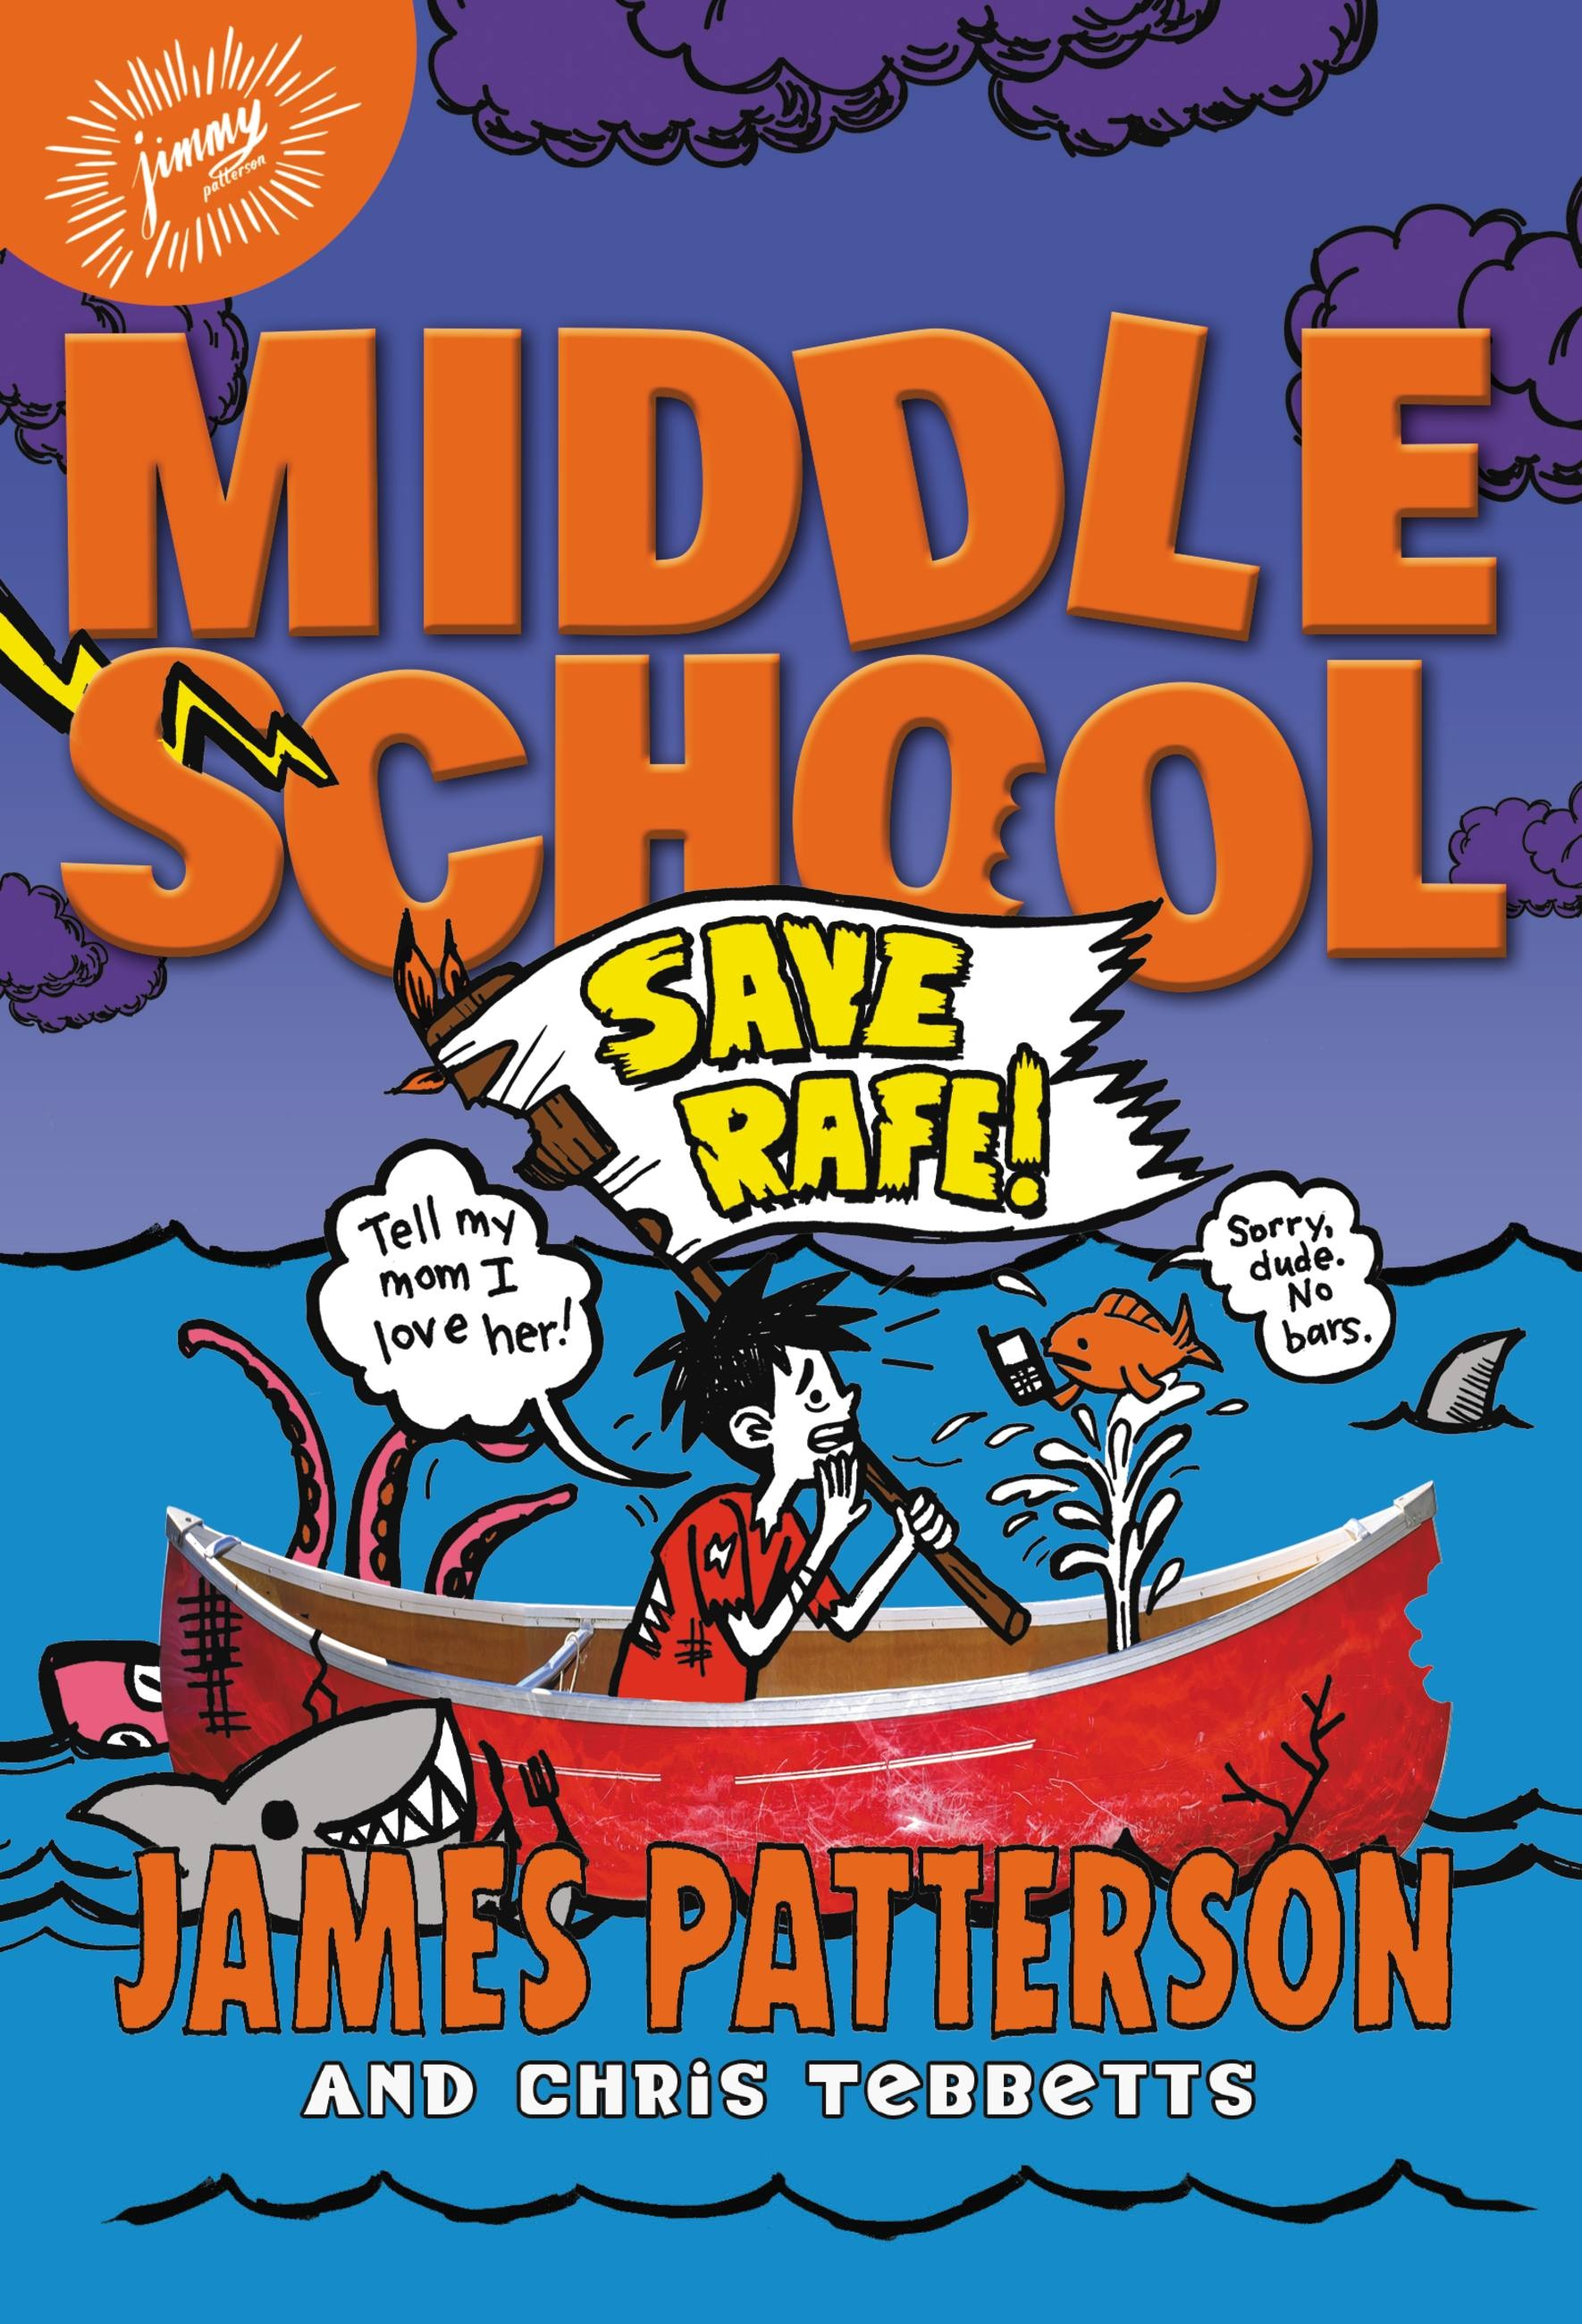 Middle School Book Cover : Middle school save rafe little brown — books for